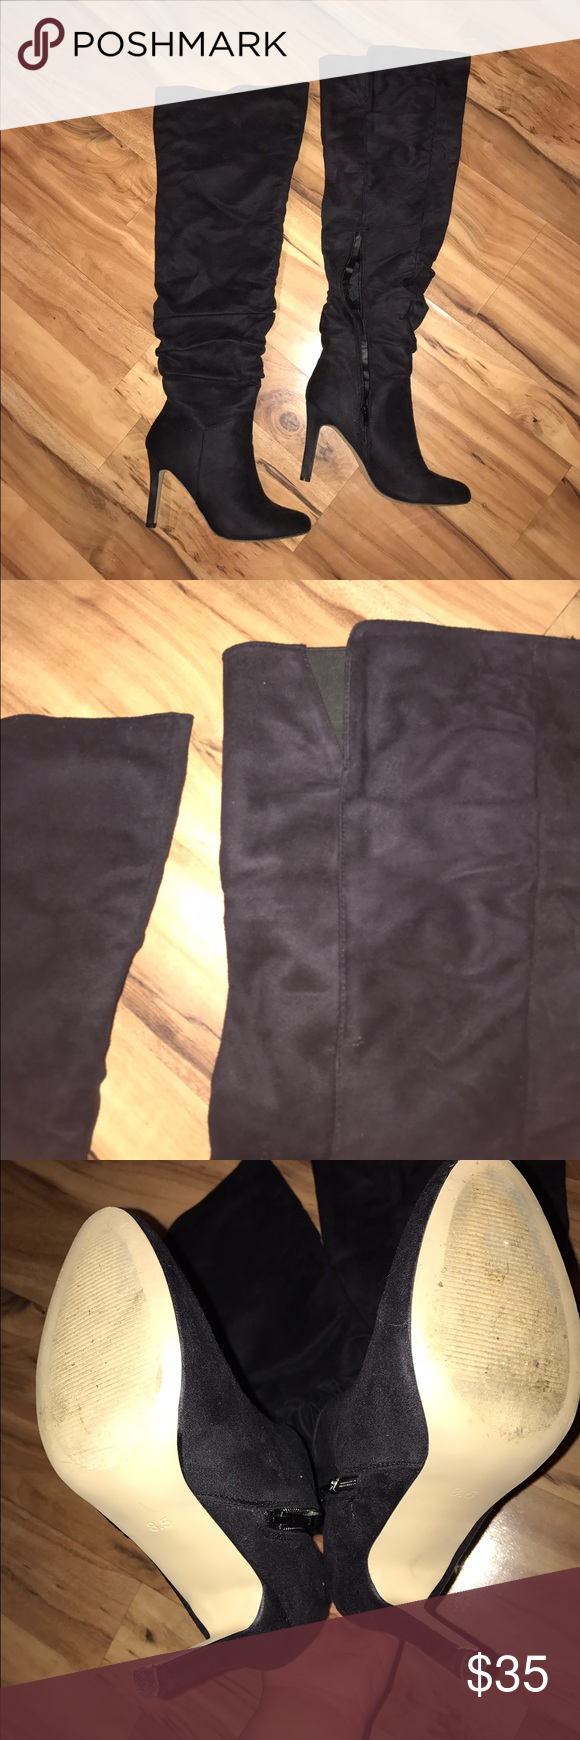 Over the knee wide calf boots Gently used Sexy over the knee wide calf faux suede boots. JustFab Shoes Over the Knee Boots